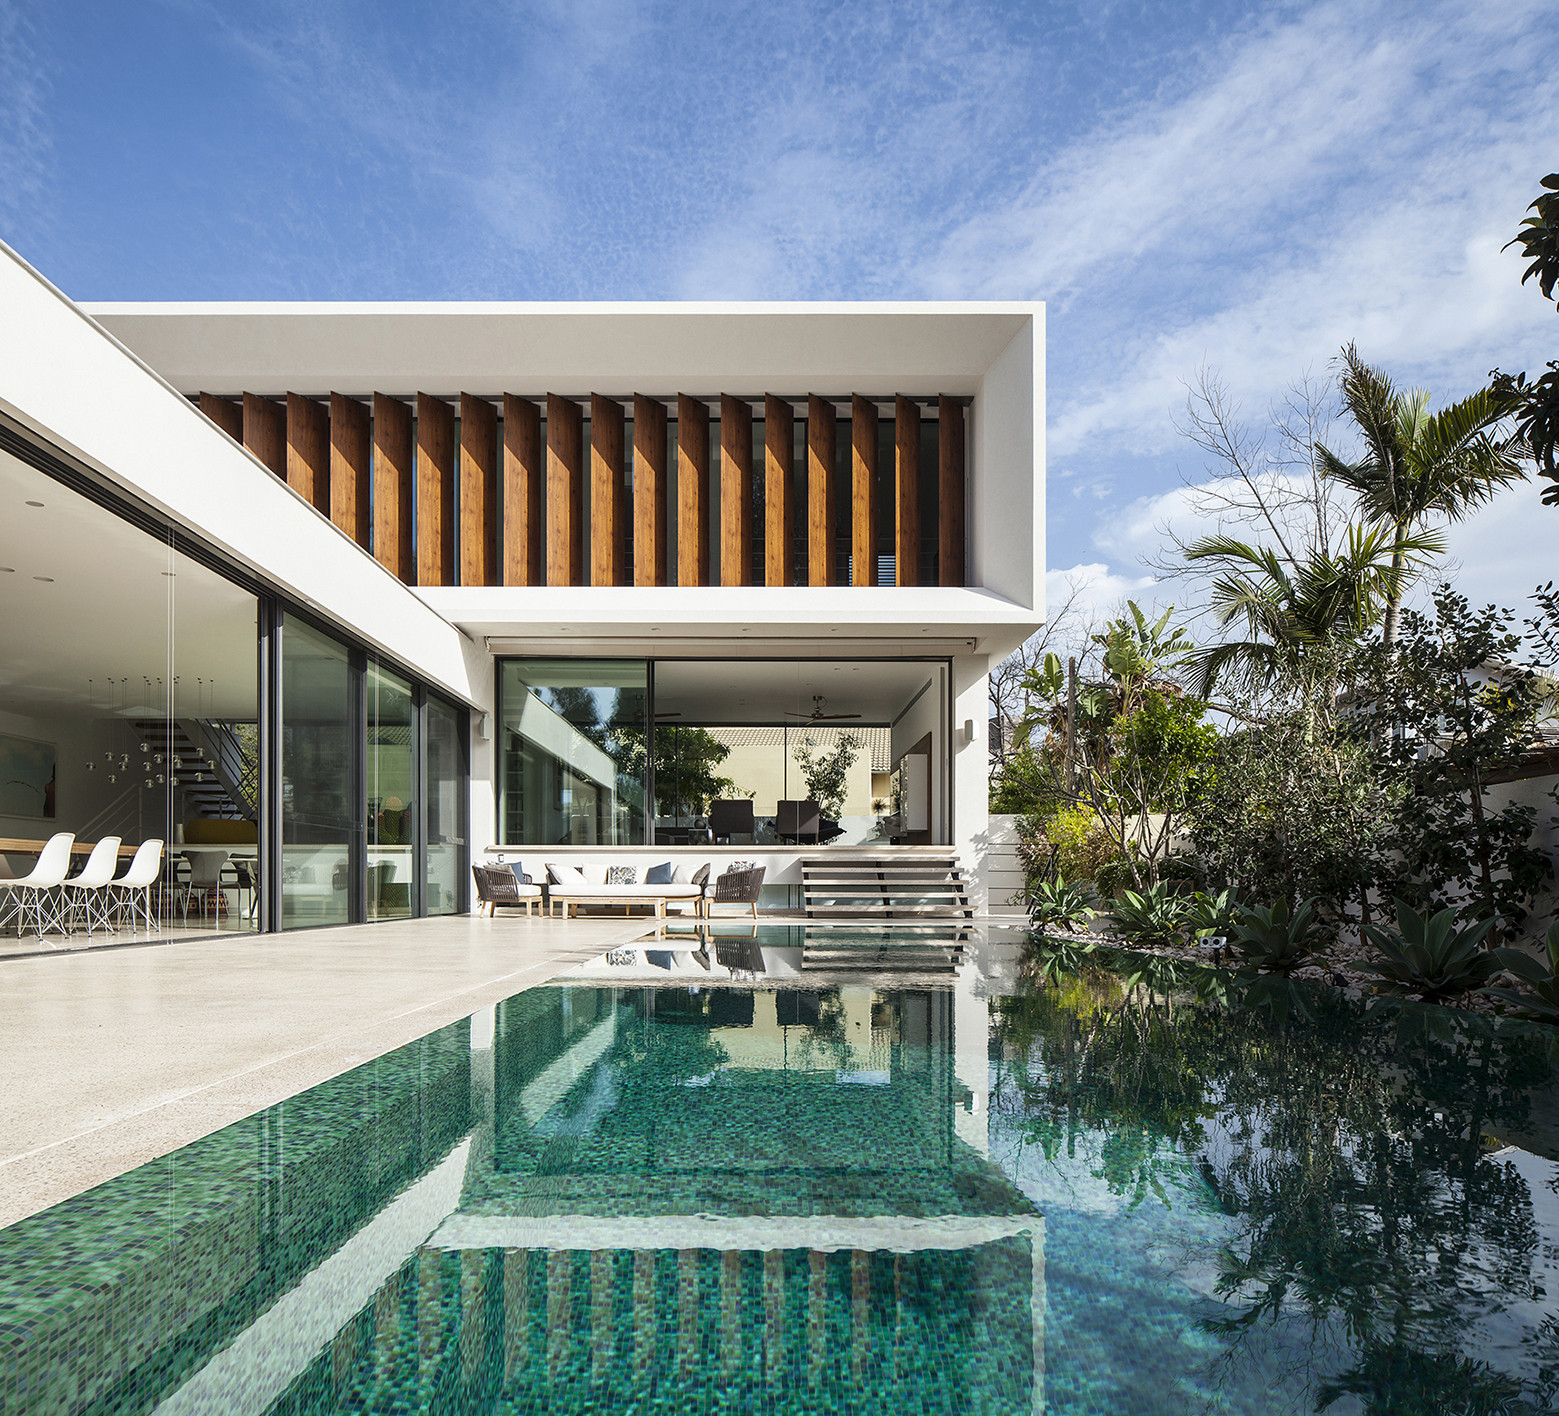 Mediterranean villa paz gersh architects archdaily for Pool design for villa